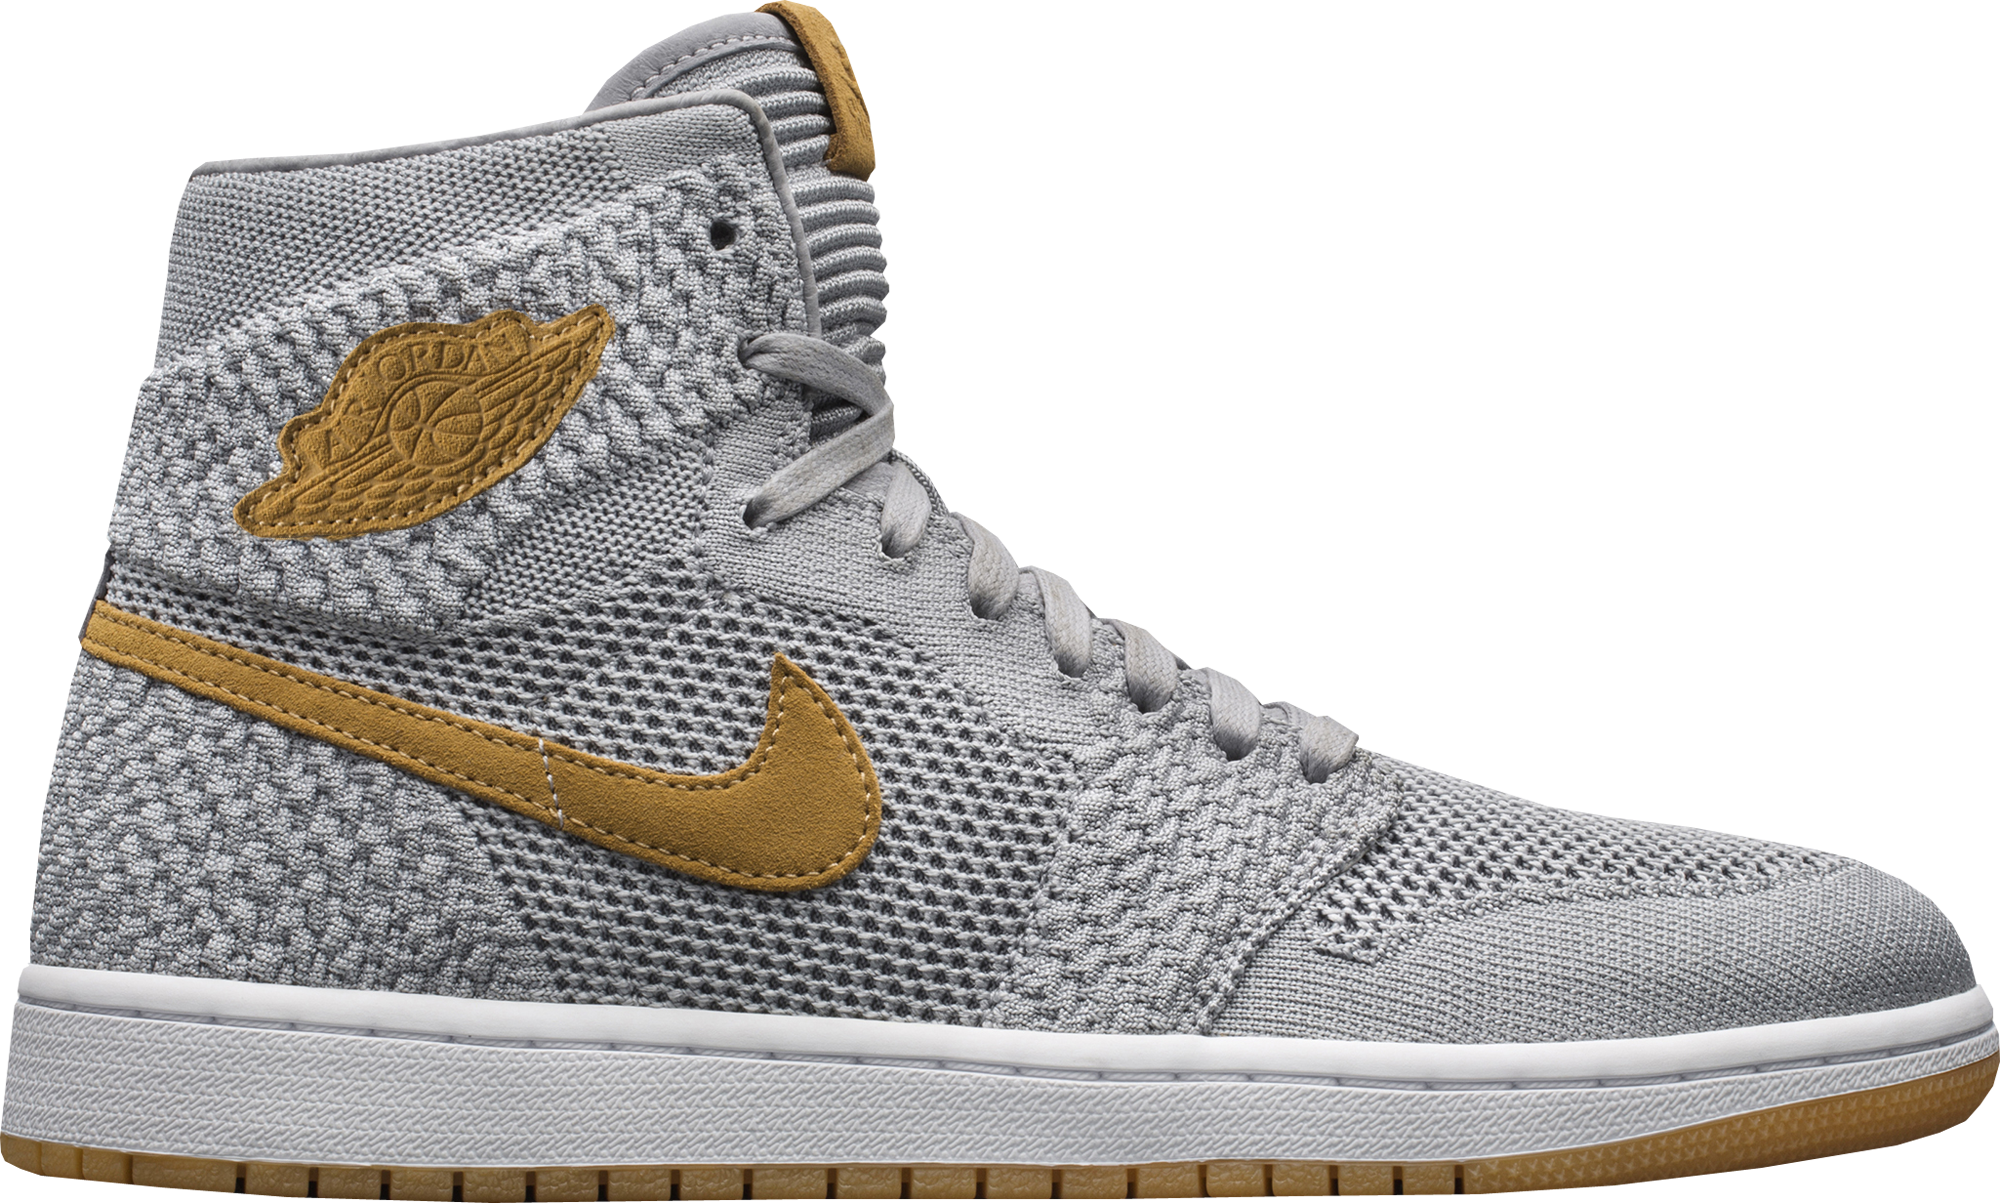 Jordan 1 Retro High Flyknit Wolf Grey